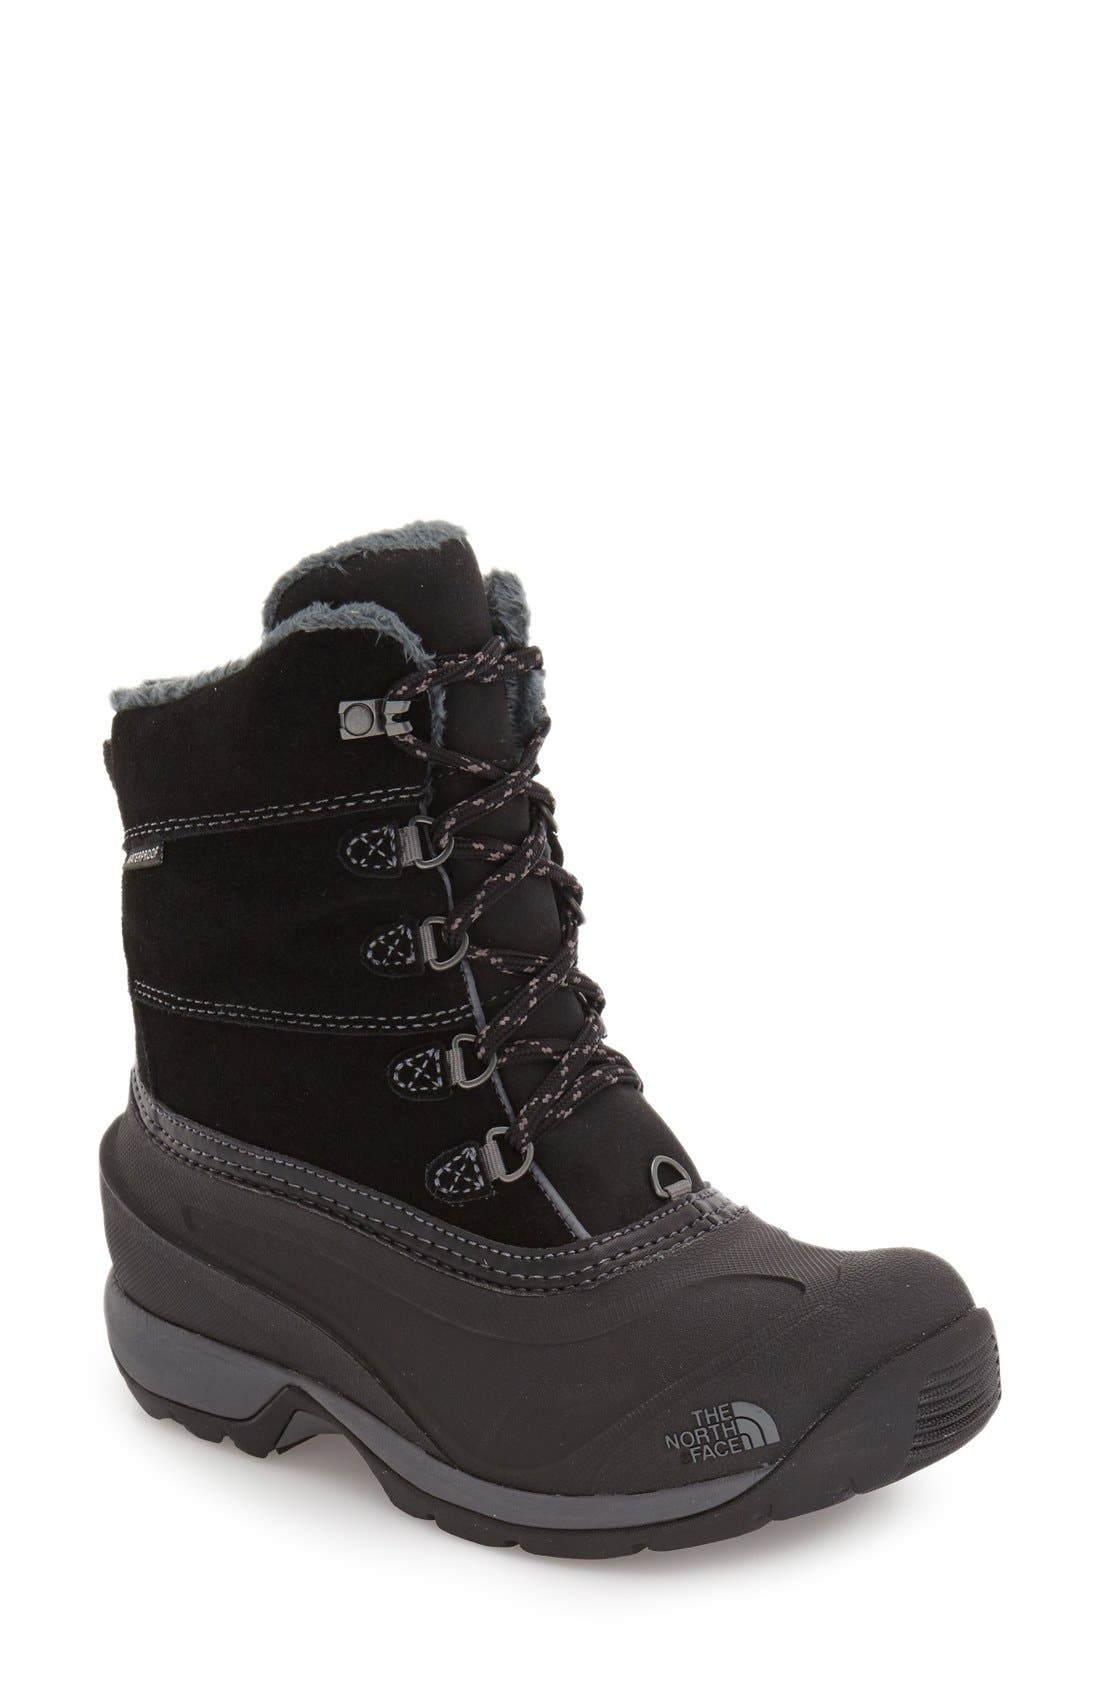 THE NORTH FACE 'Chilkat III' Waterproof Insulated Snow